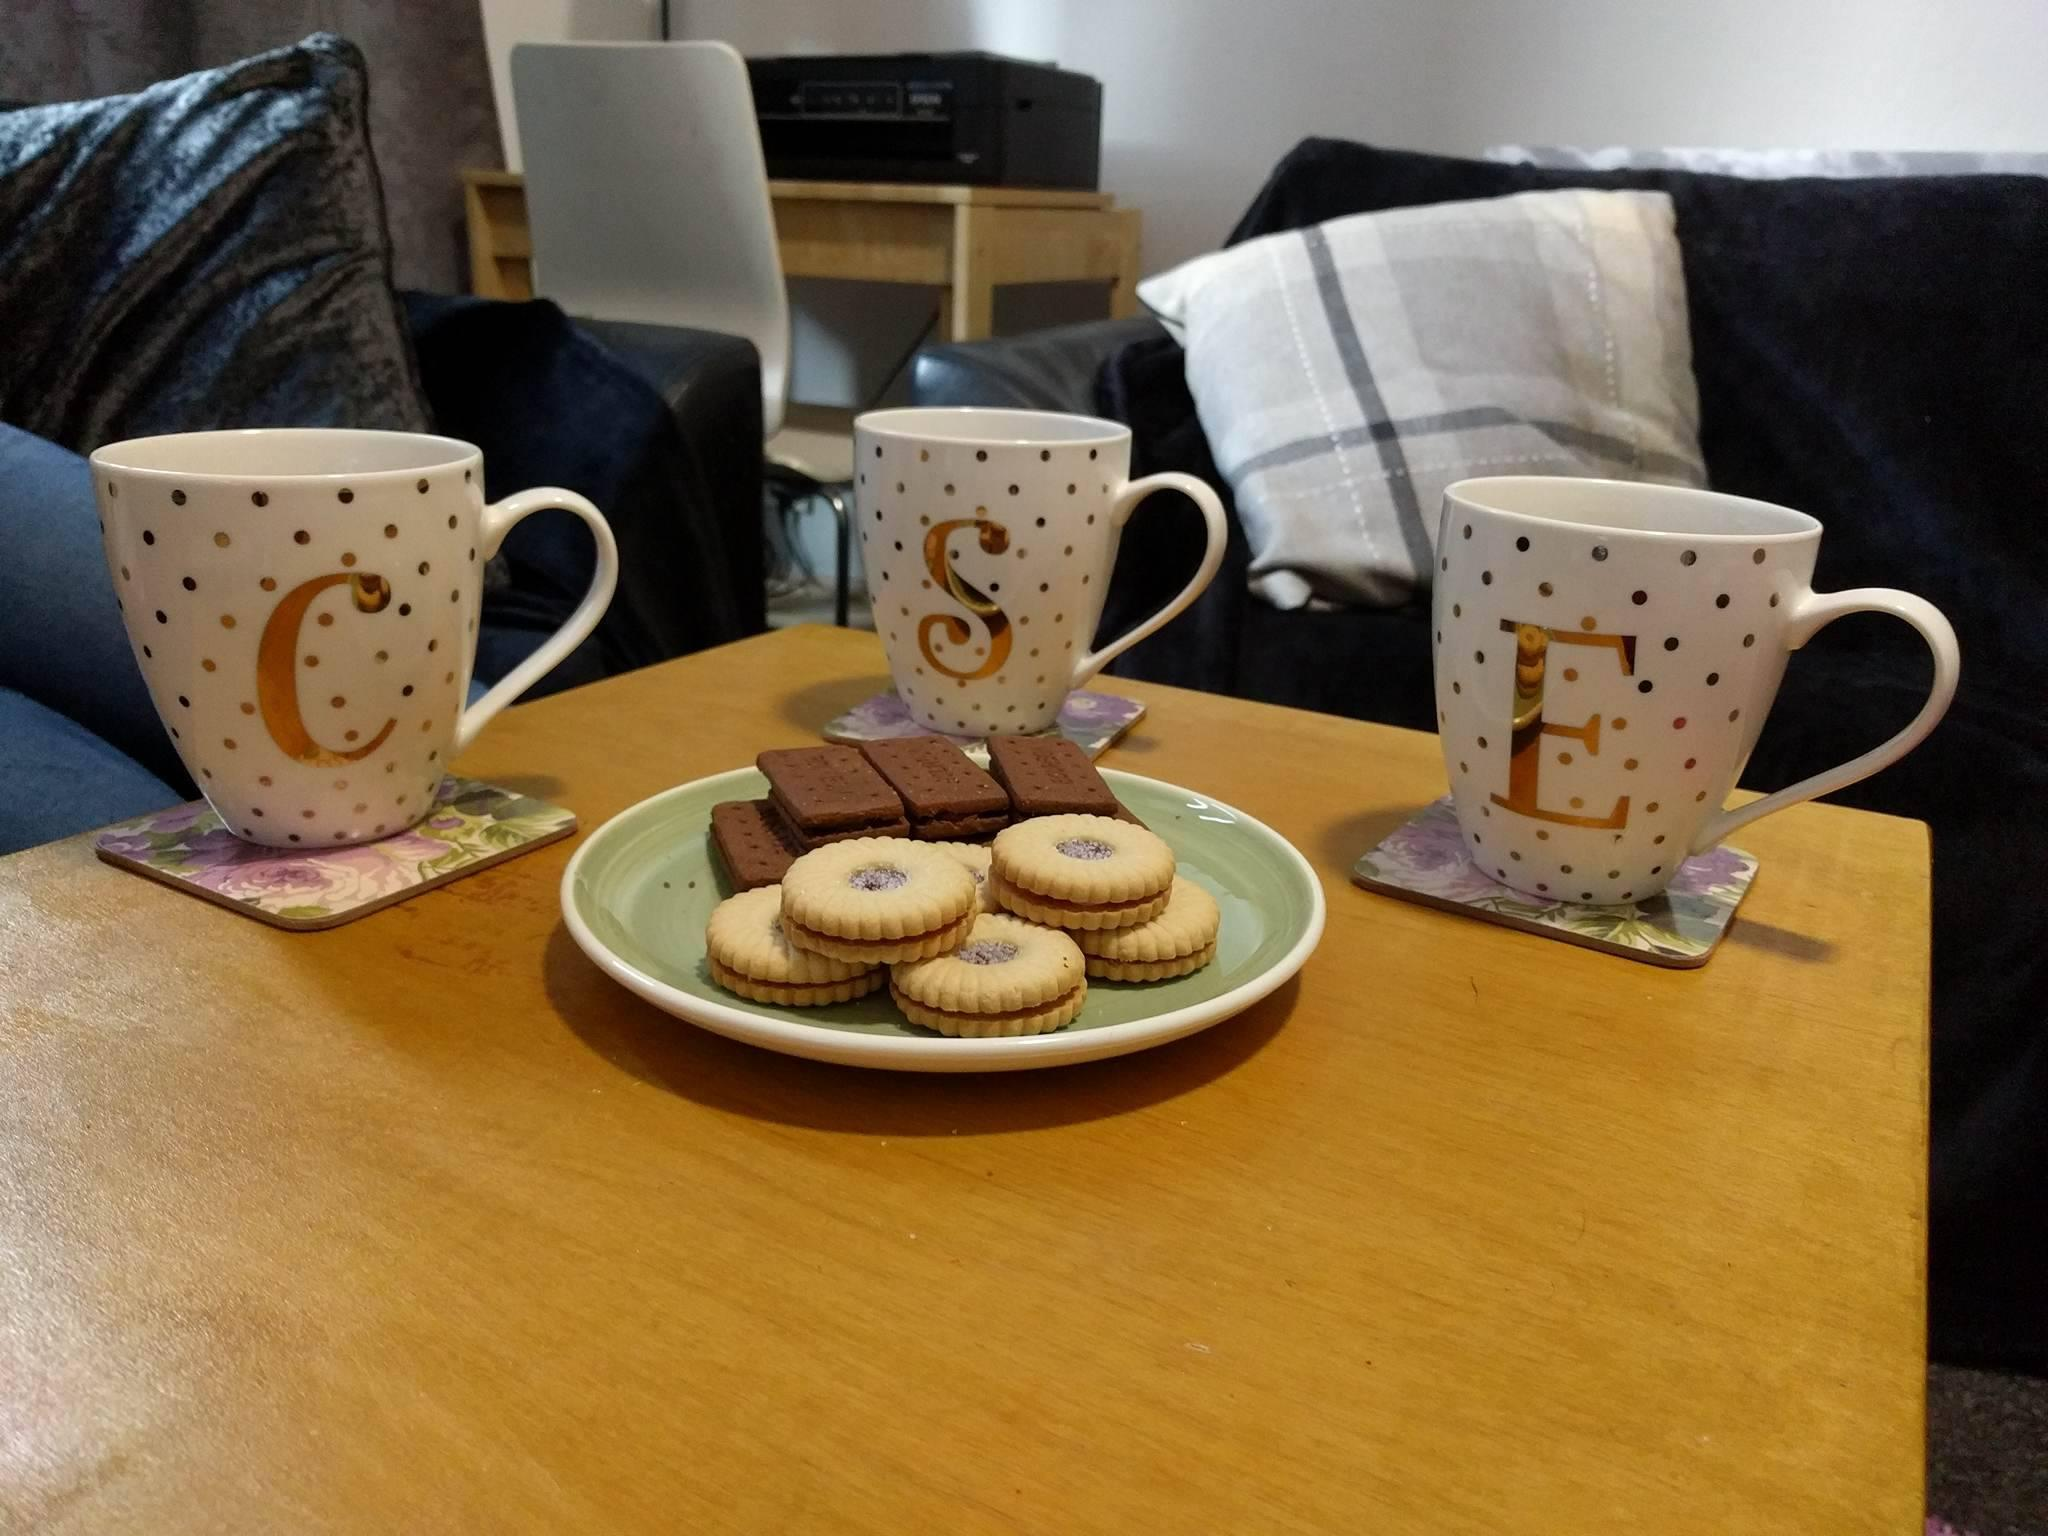 Mums know a cup of tea and a biscuit can solve any problem